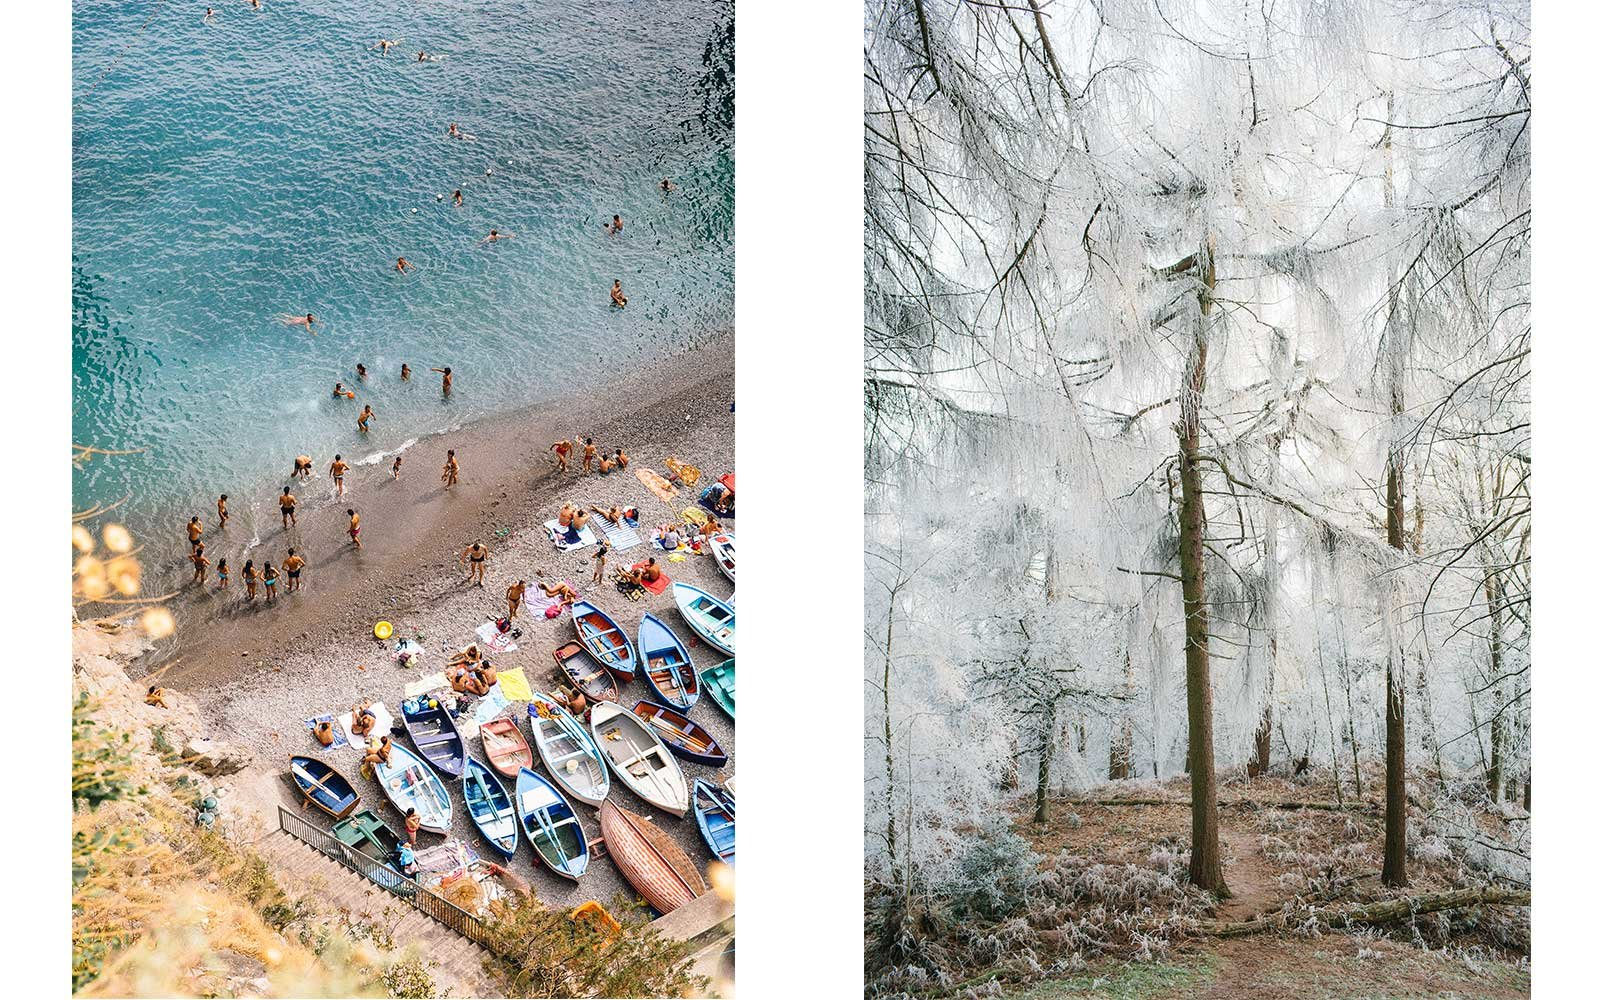 Left: Praiano 2017, by Lucy Laucht. Right: Ilkley Moor, 2008, by Michael Turek